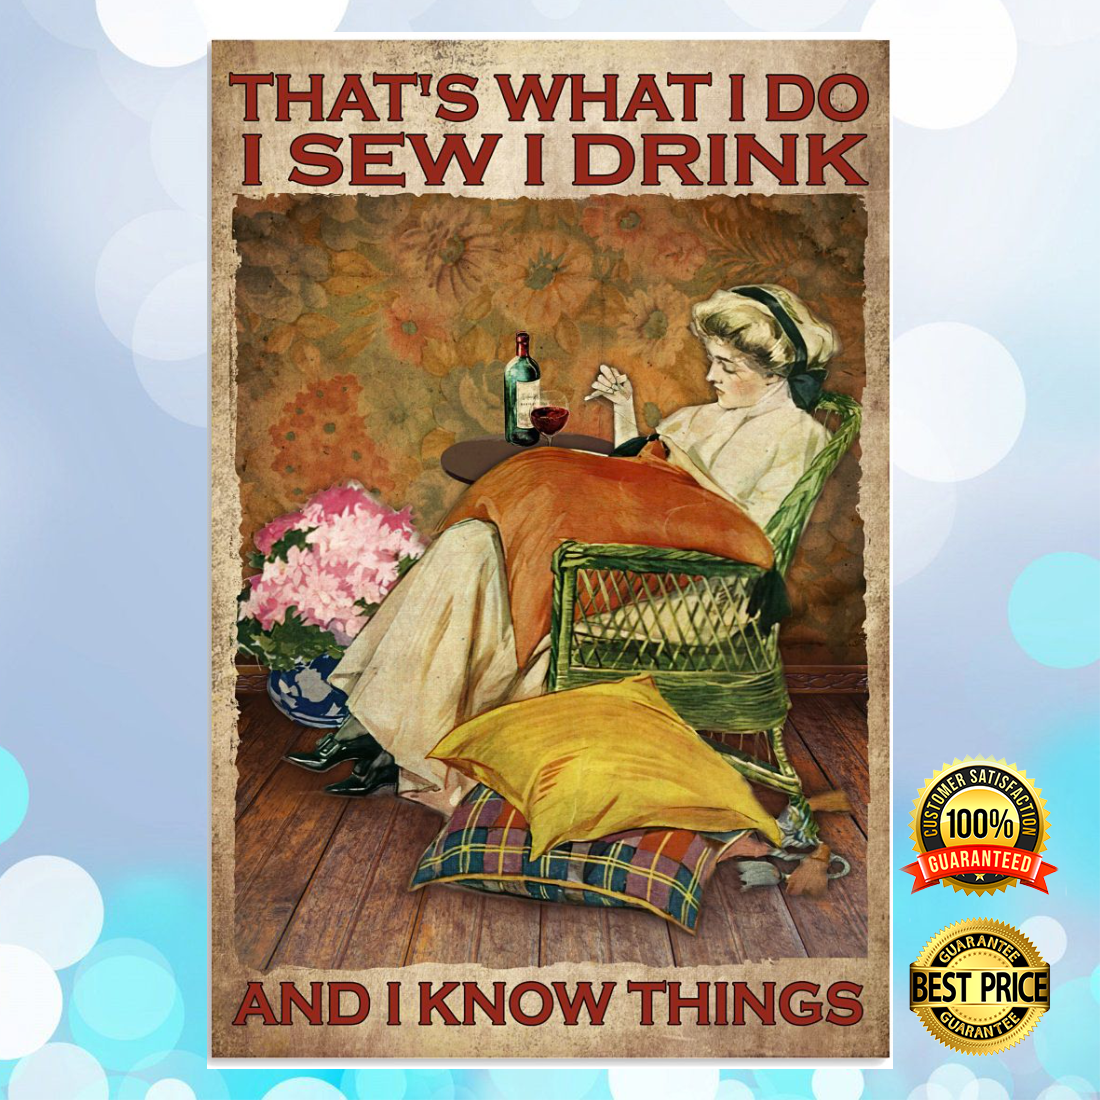 THAT'S WHAT I DO I SEW I DRINK AND I KNOW THINGS POSTER 6